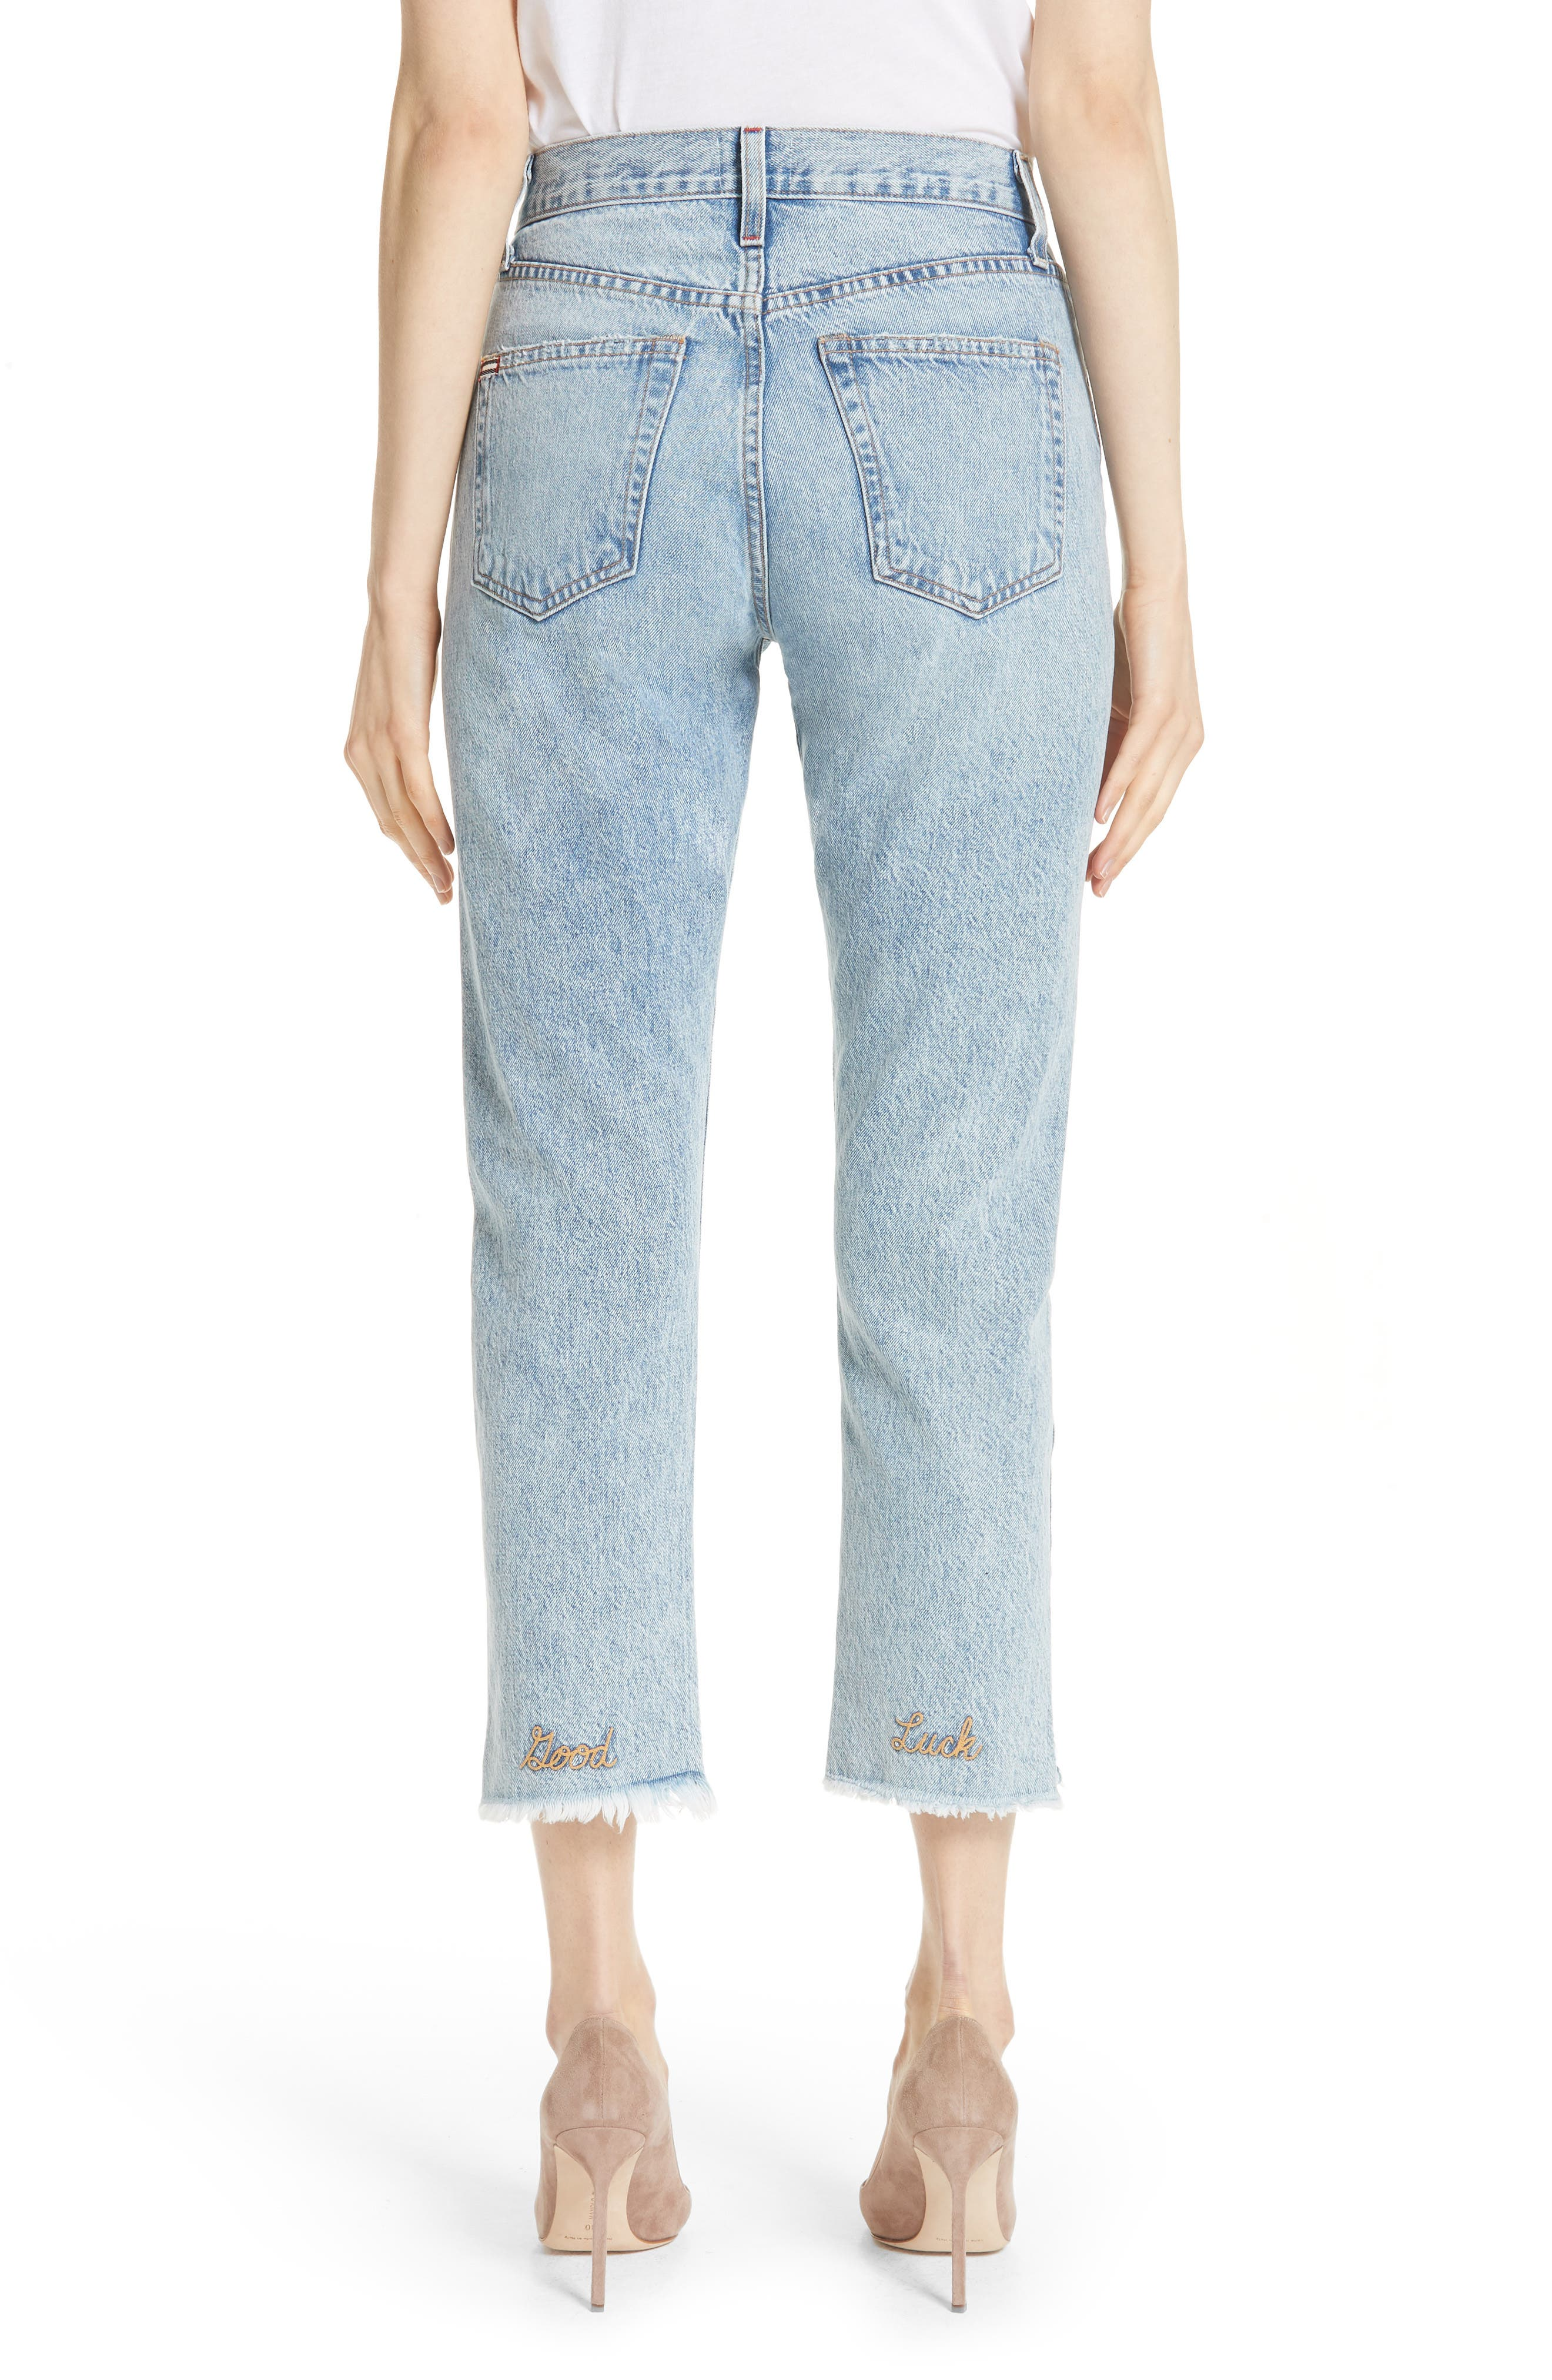 AO.LA Amazing Good Luck Slim Girlfriend Jeans,                             Alternate thumbnail 2, color,                             Out Of Sight/ Gold